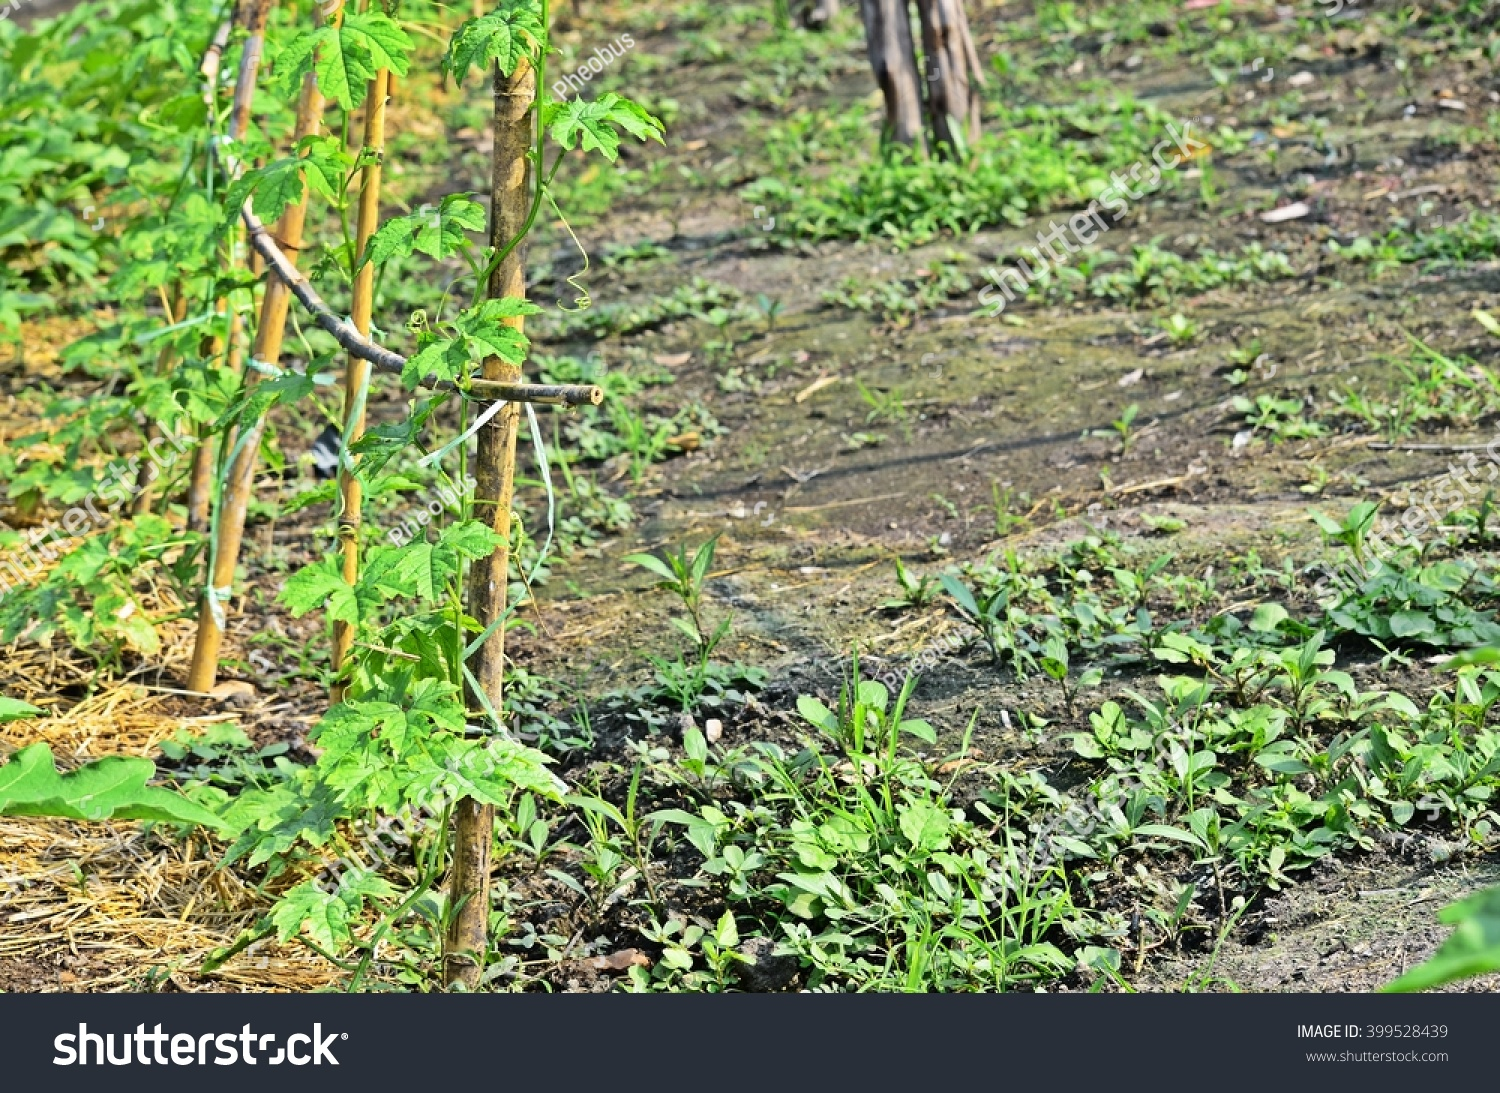 sponge gourd soil agriculture edible plant stock photo 399528439